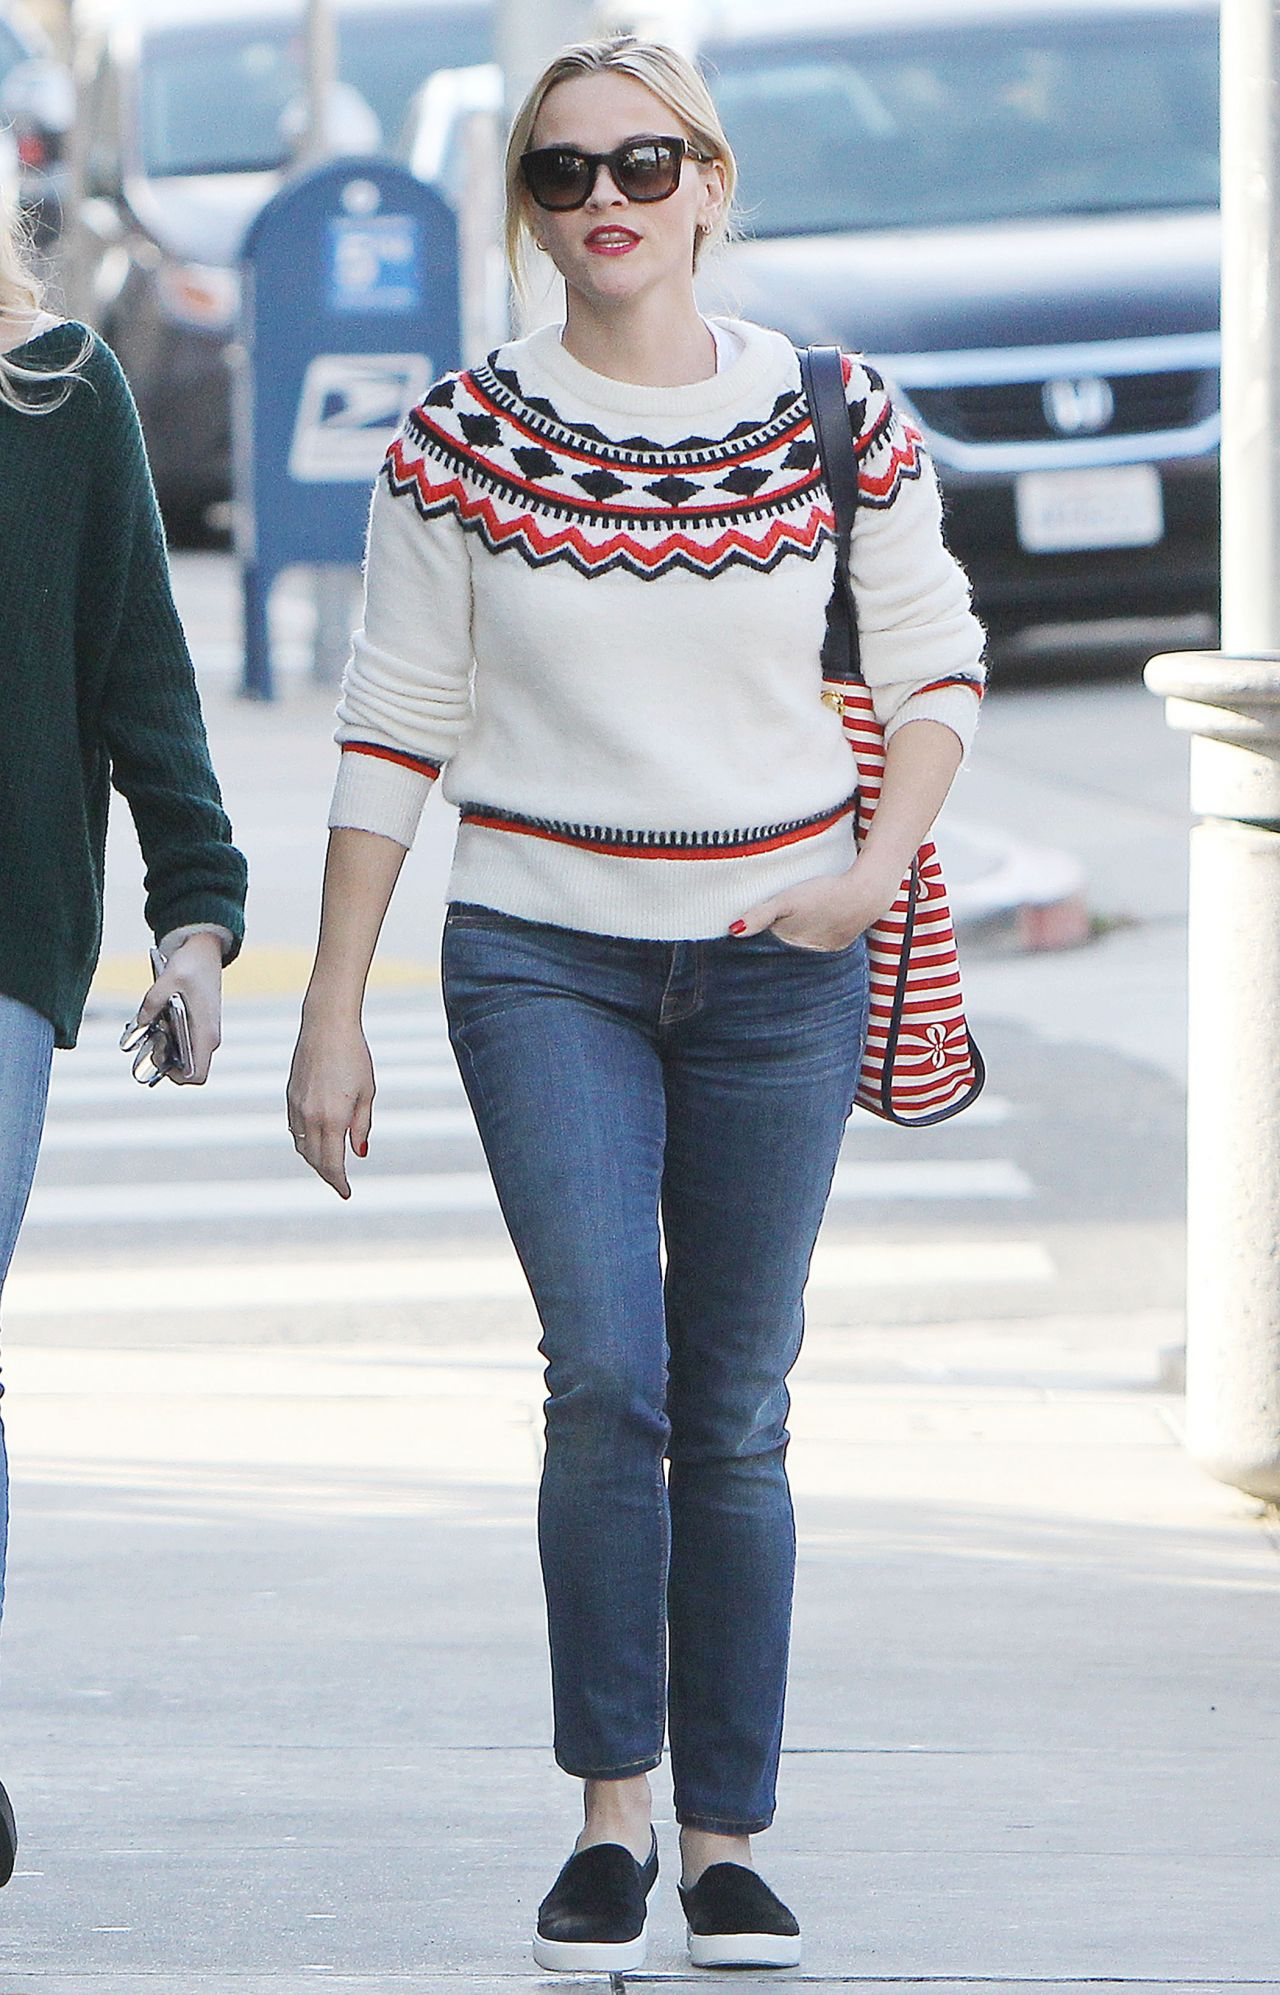 2015 Los Angeles Film Festival: Reese Witherspoon Street Style